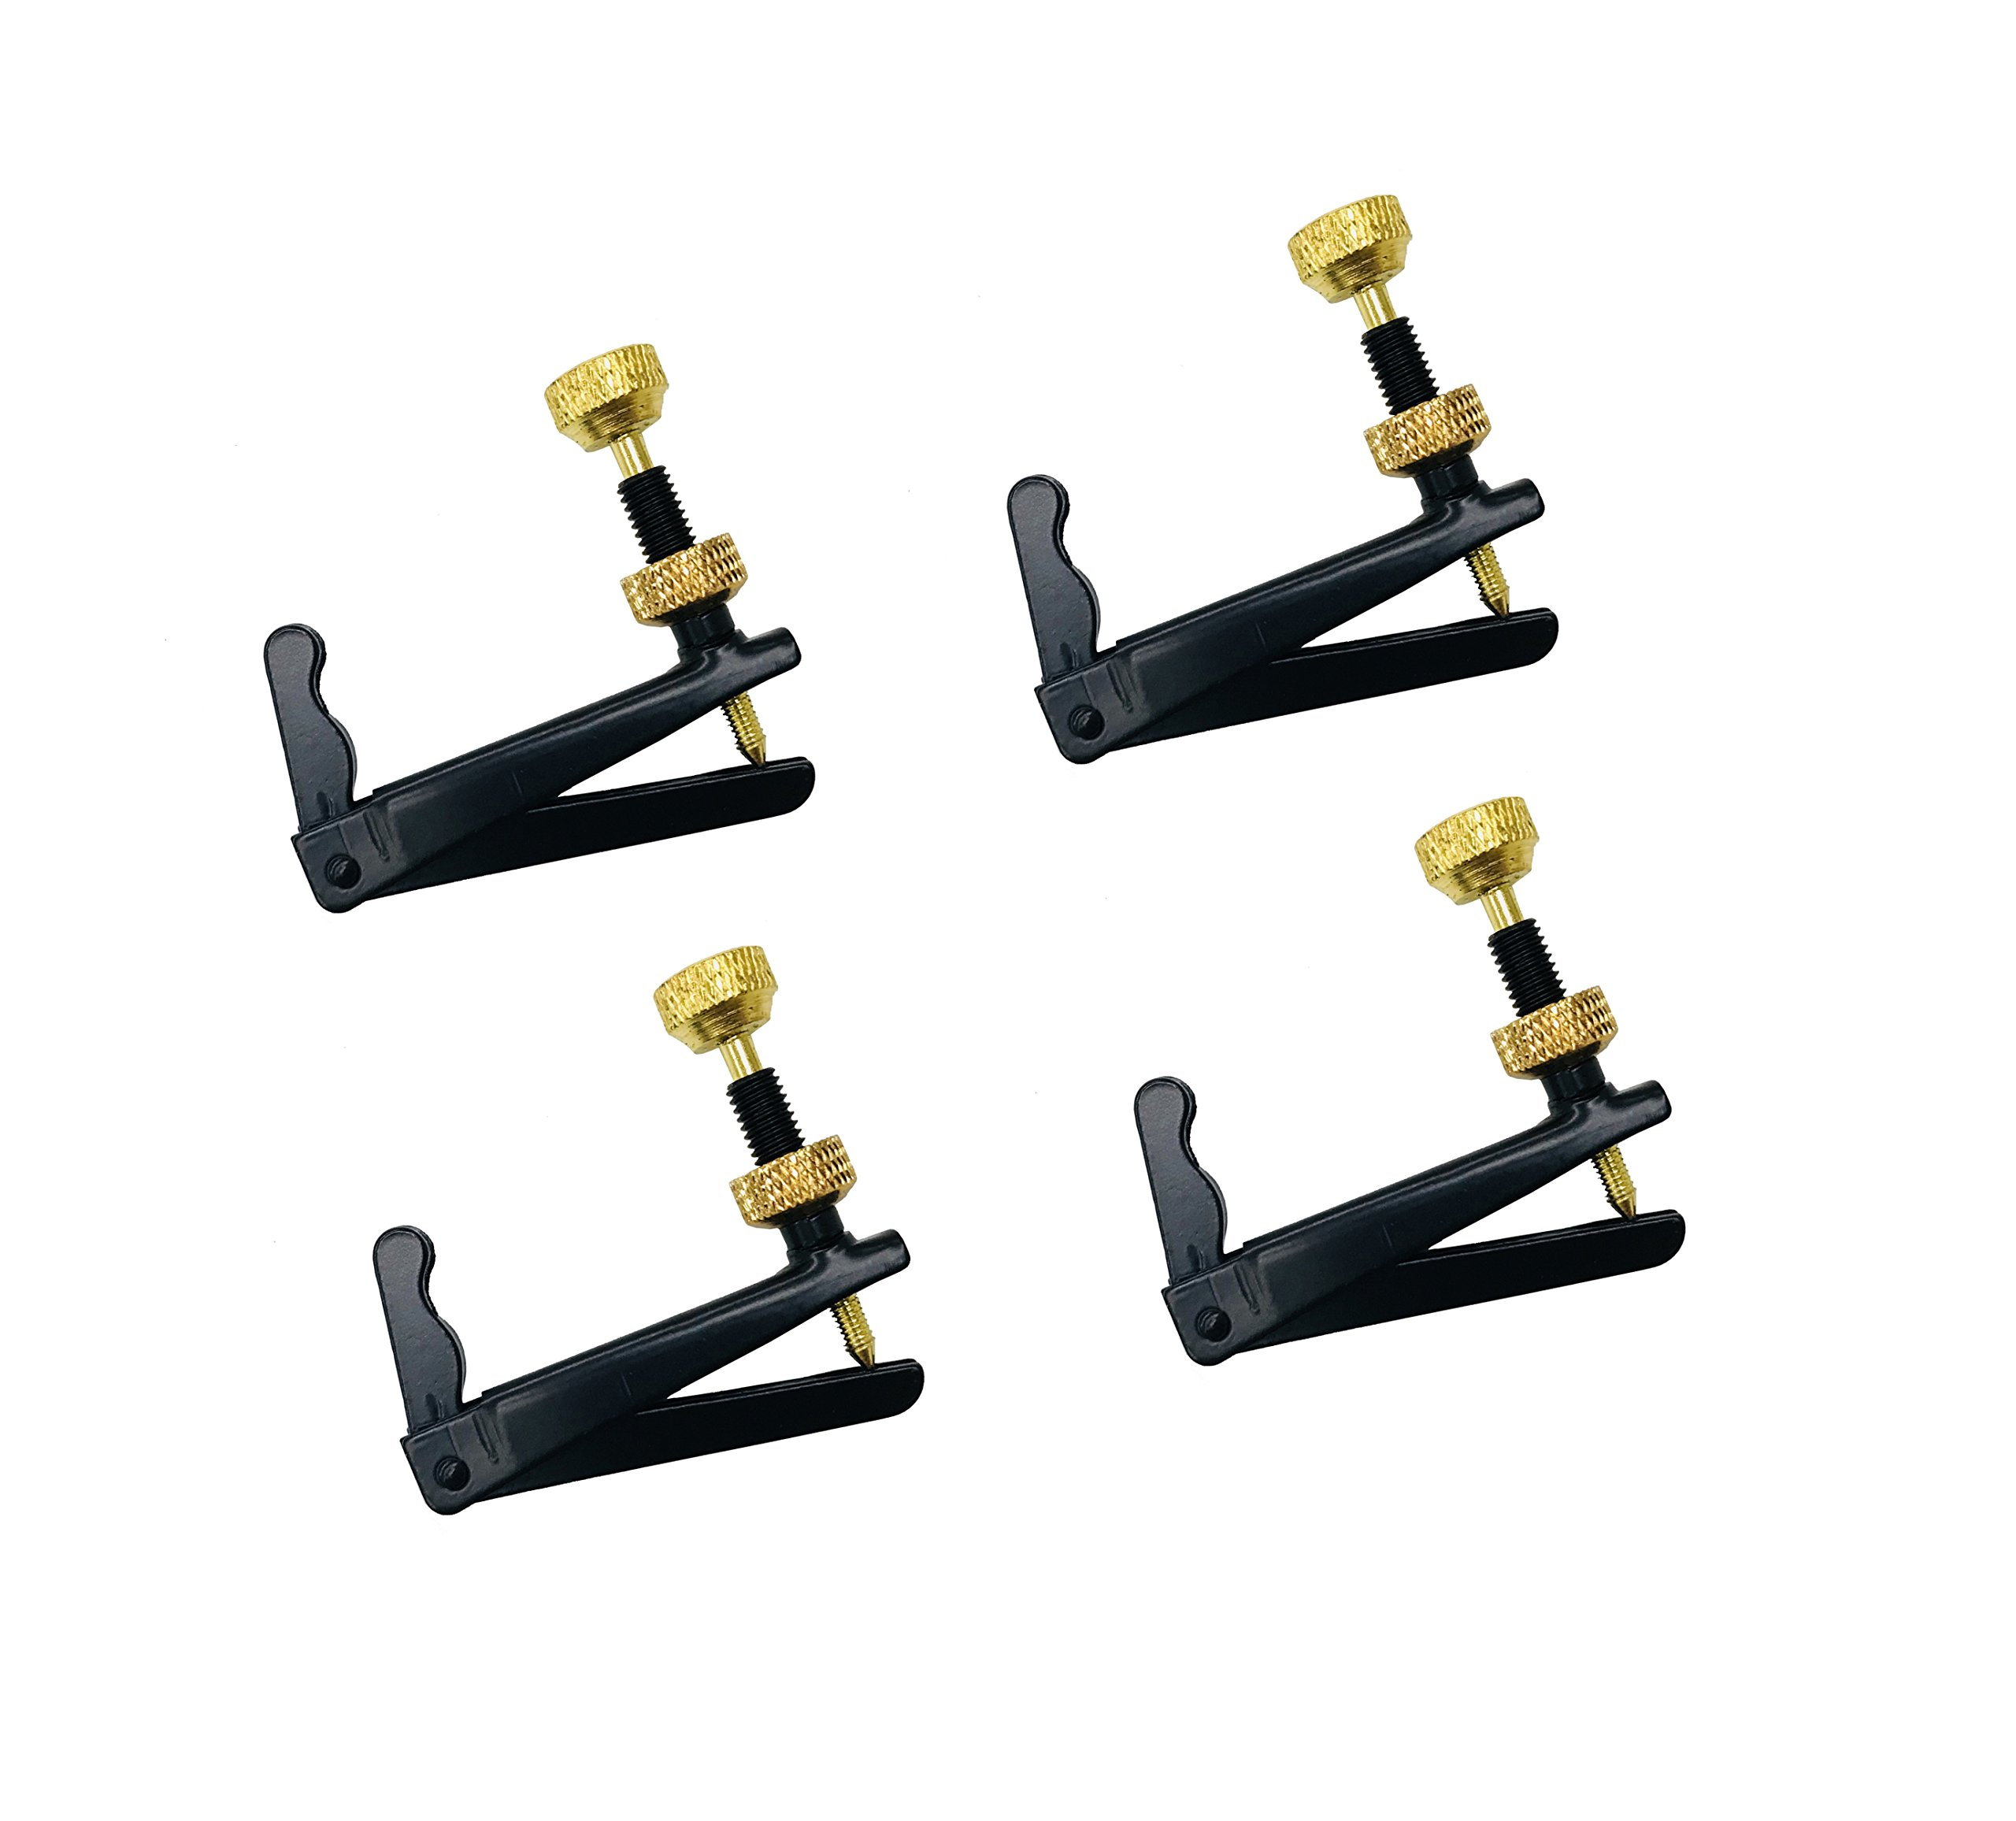 MI&VI Cello Fine Tuners Adjusters - Stainless Steel 4 Pcs (Gold/Black - 3/4-4/4 Size)